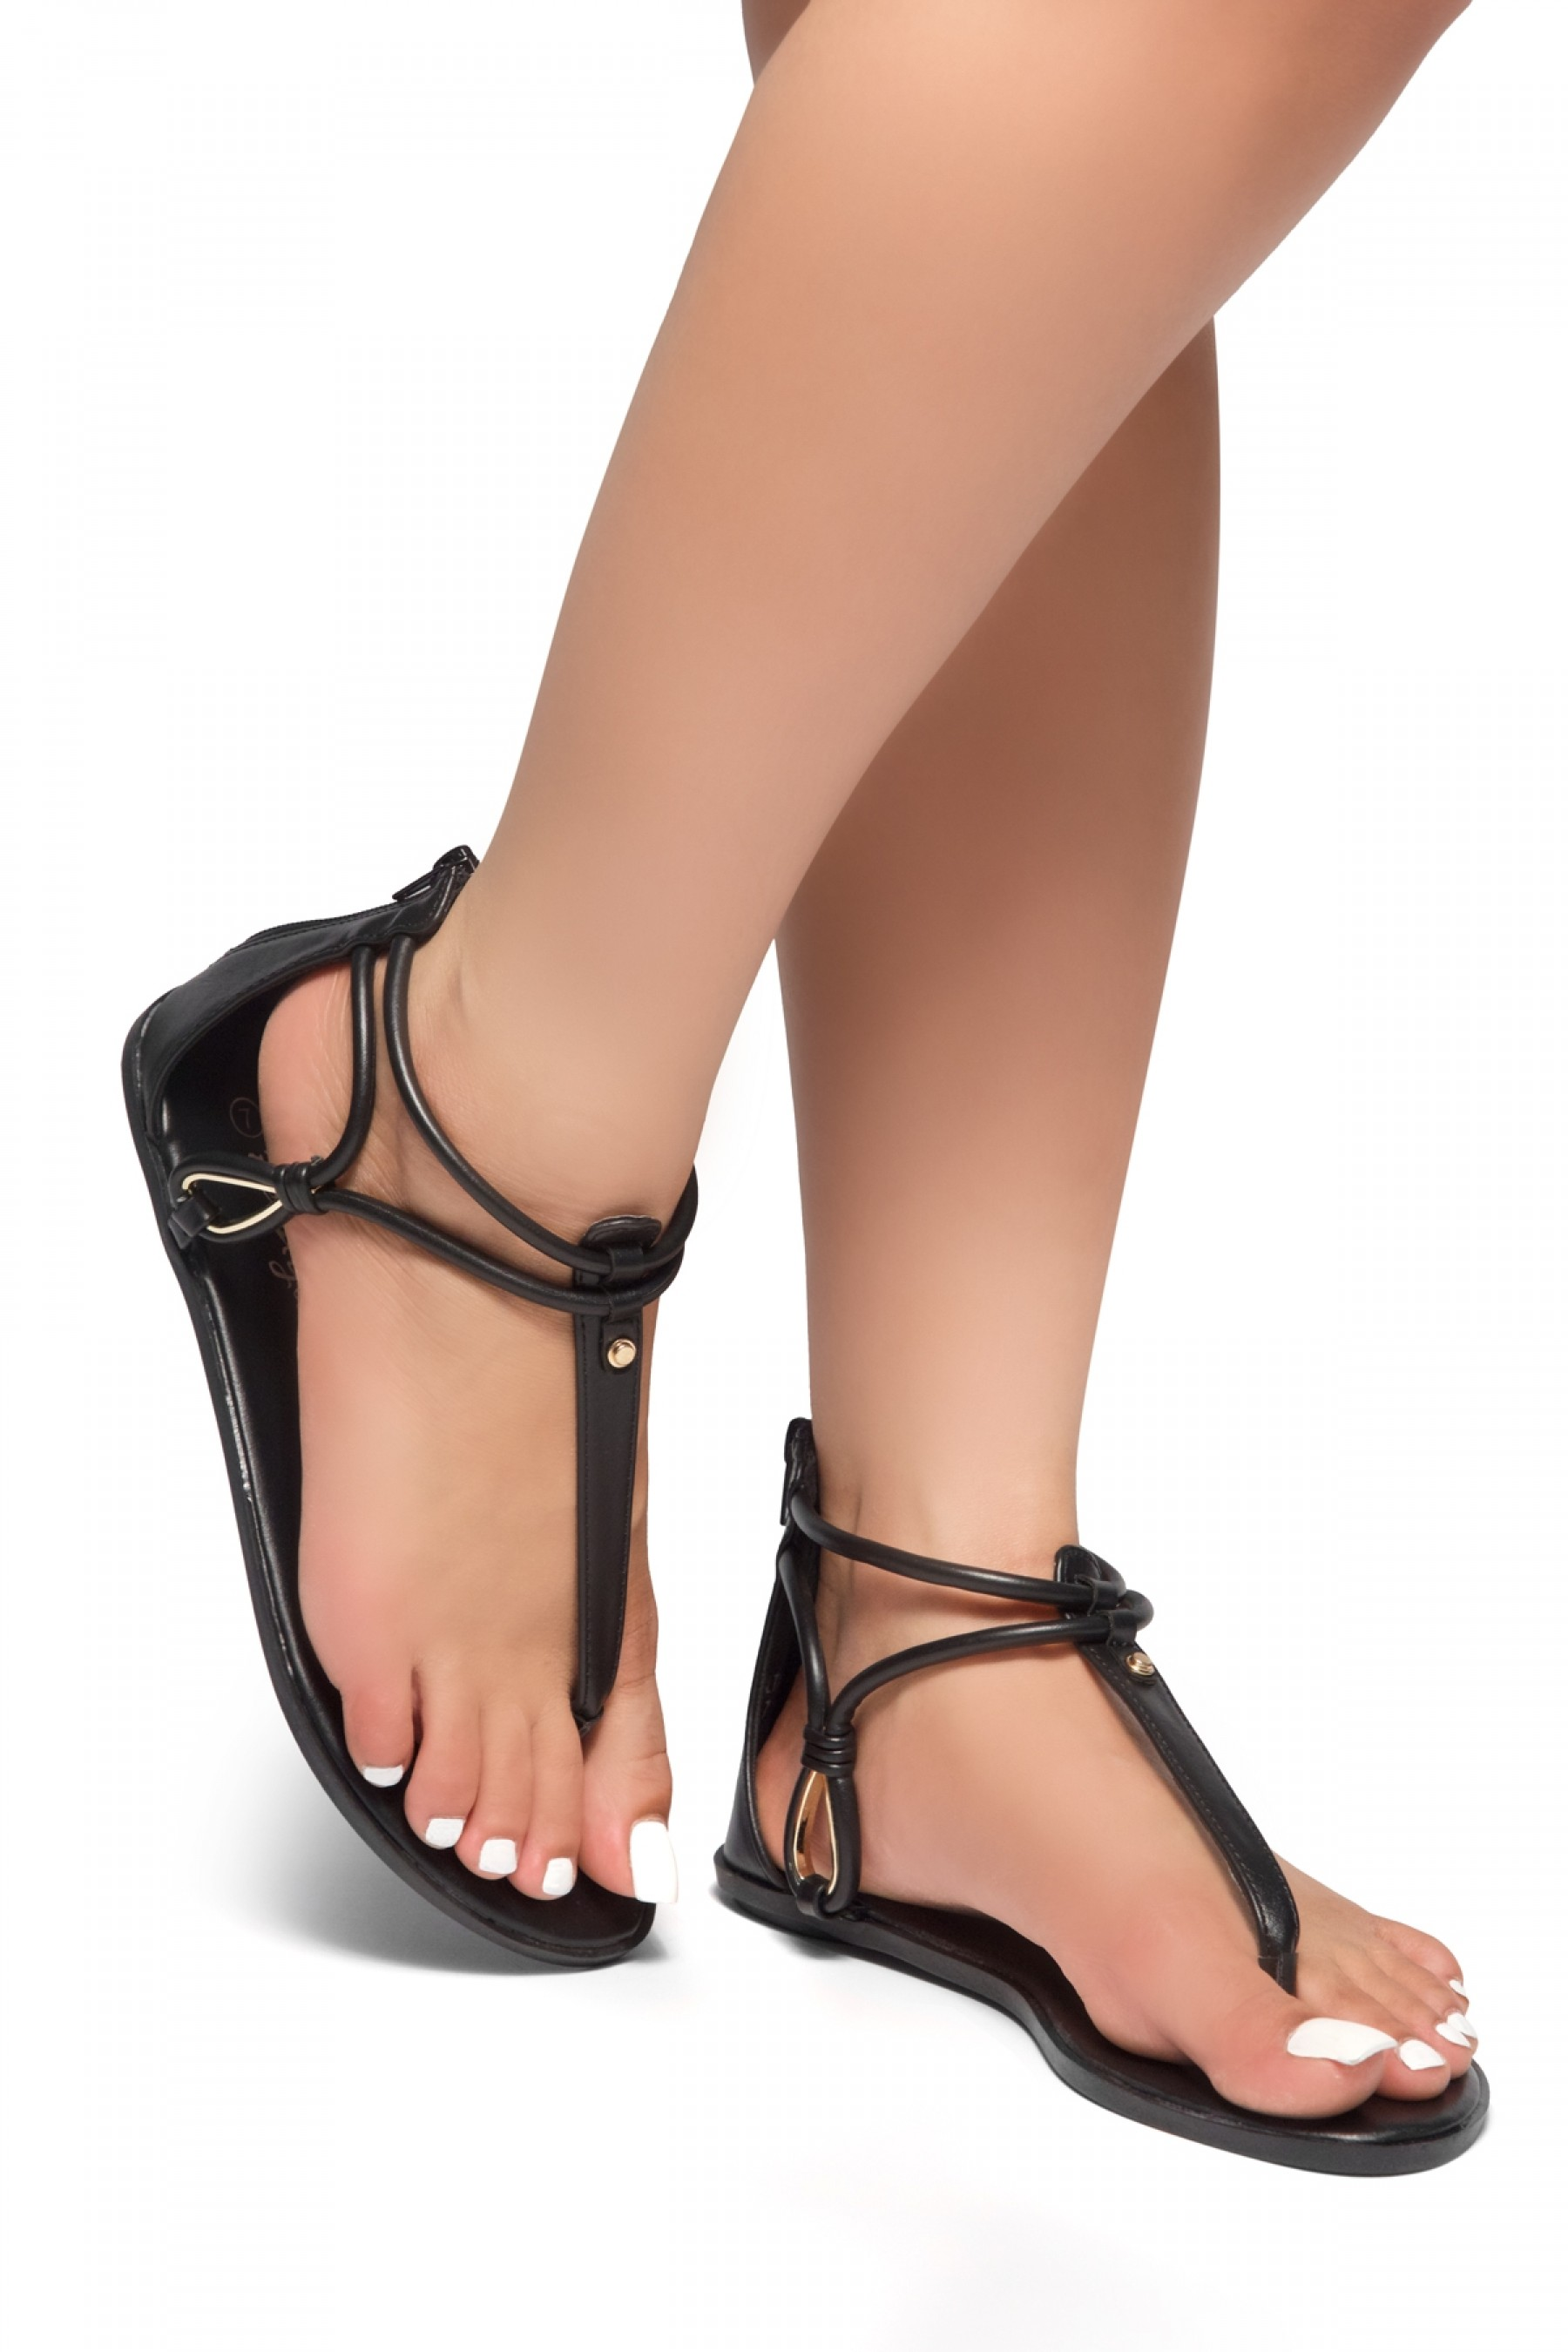 HerStyle Alta – Open Toe T-Strap Thong Sandals with Simple Metallic Stud, Back Closure (Black)